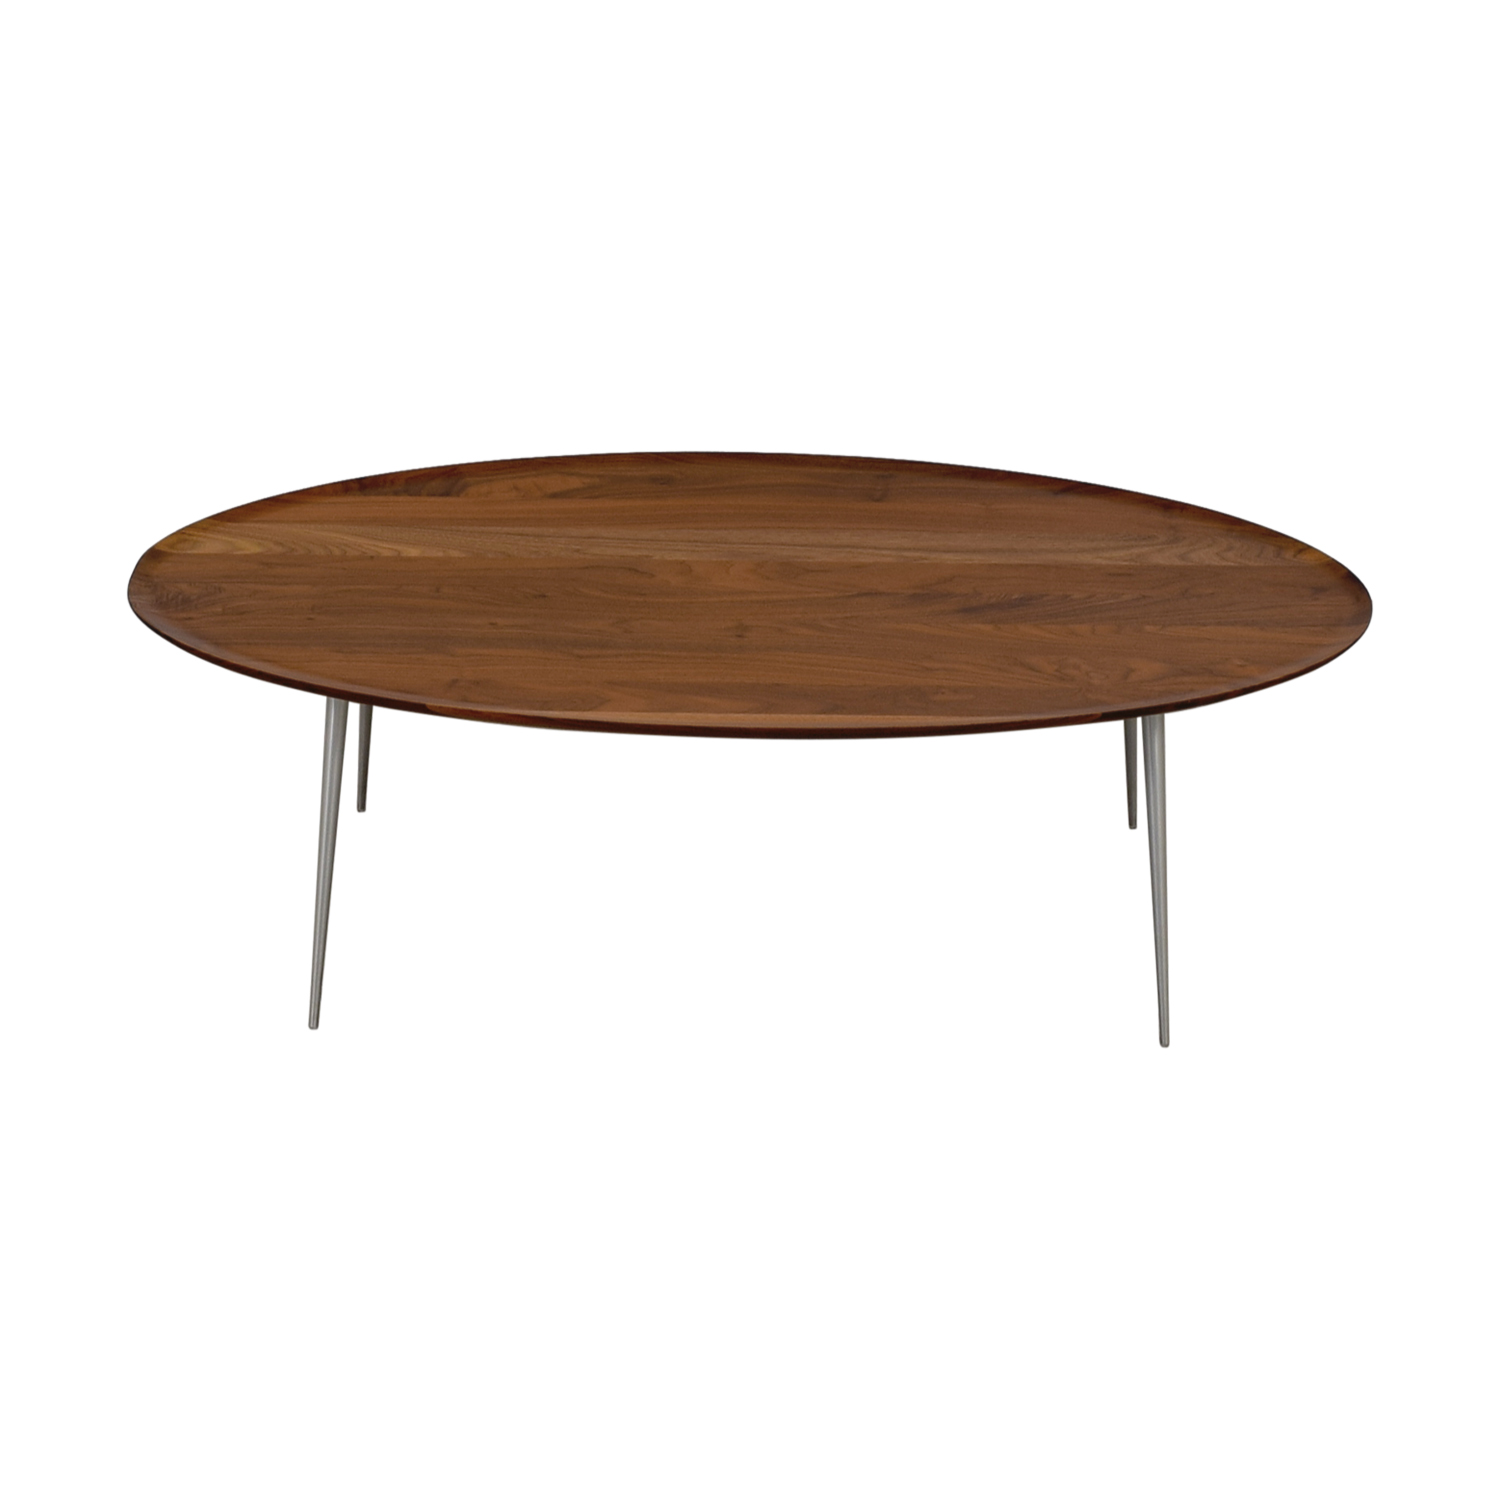 Room & Board Room & Board Bailey Walnut Oval Cocktail Table dimensions